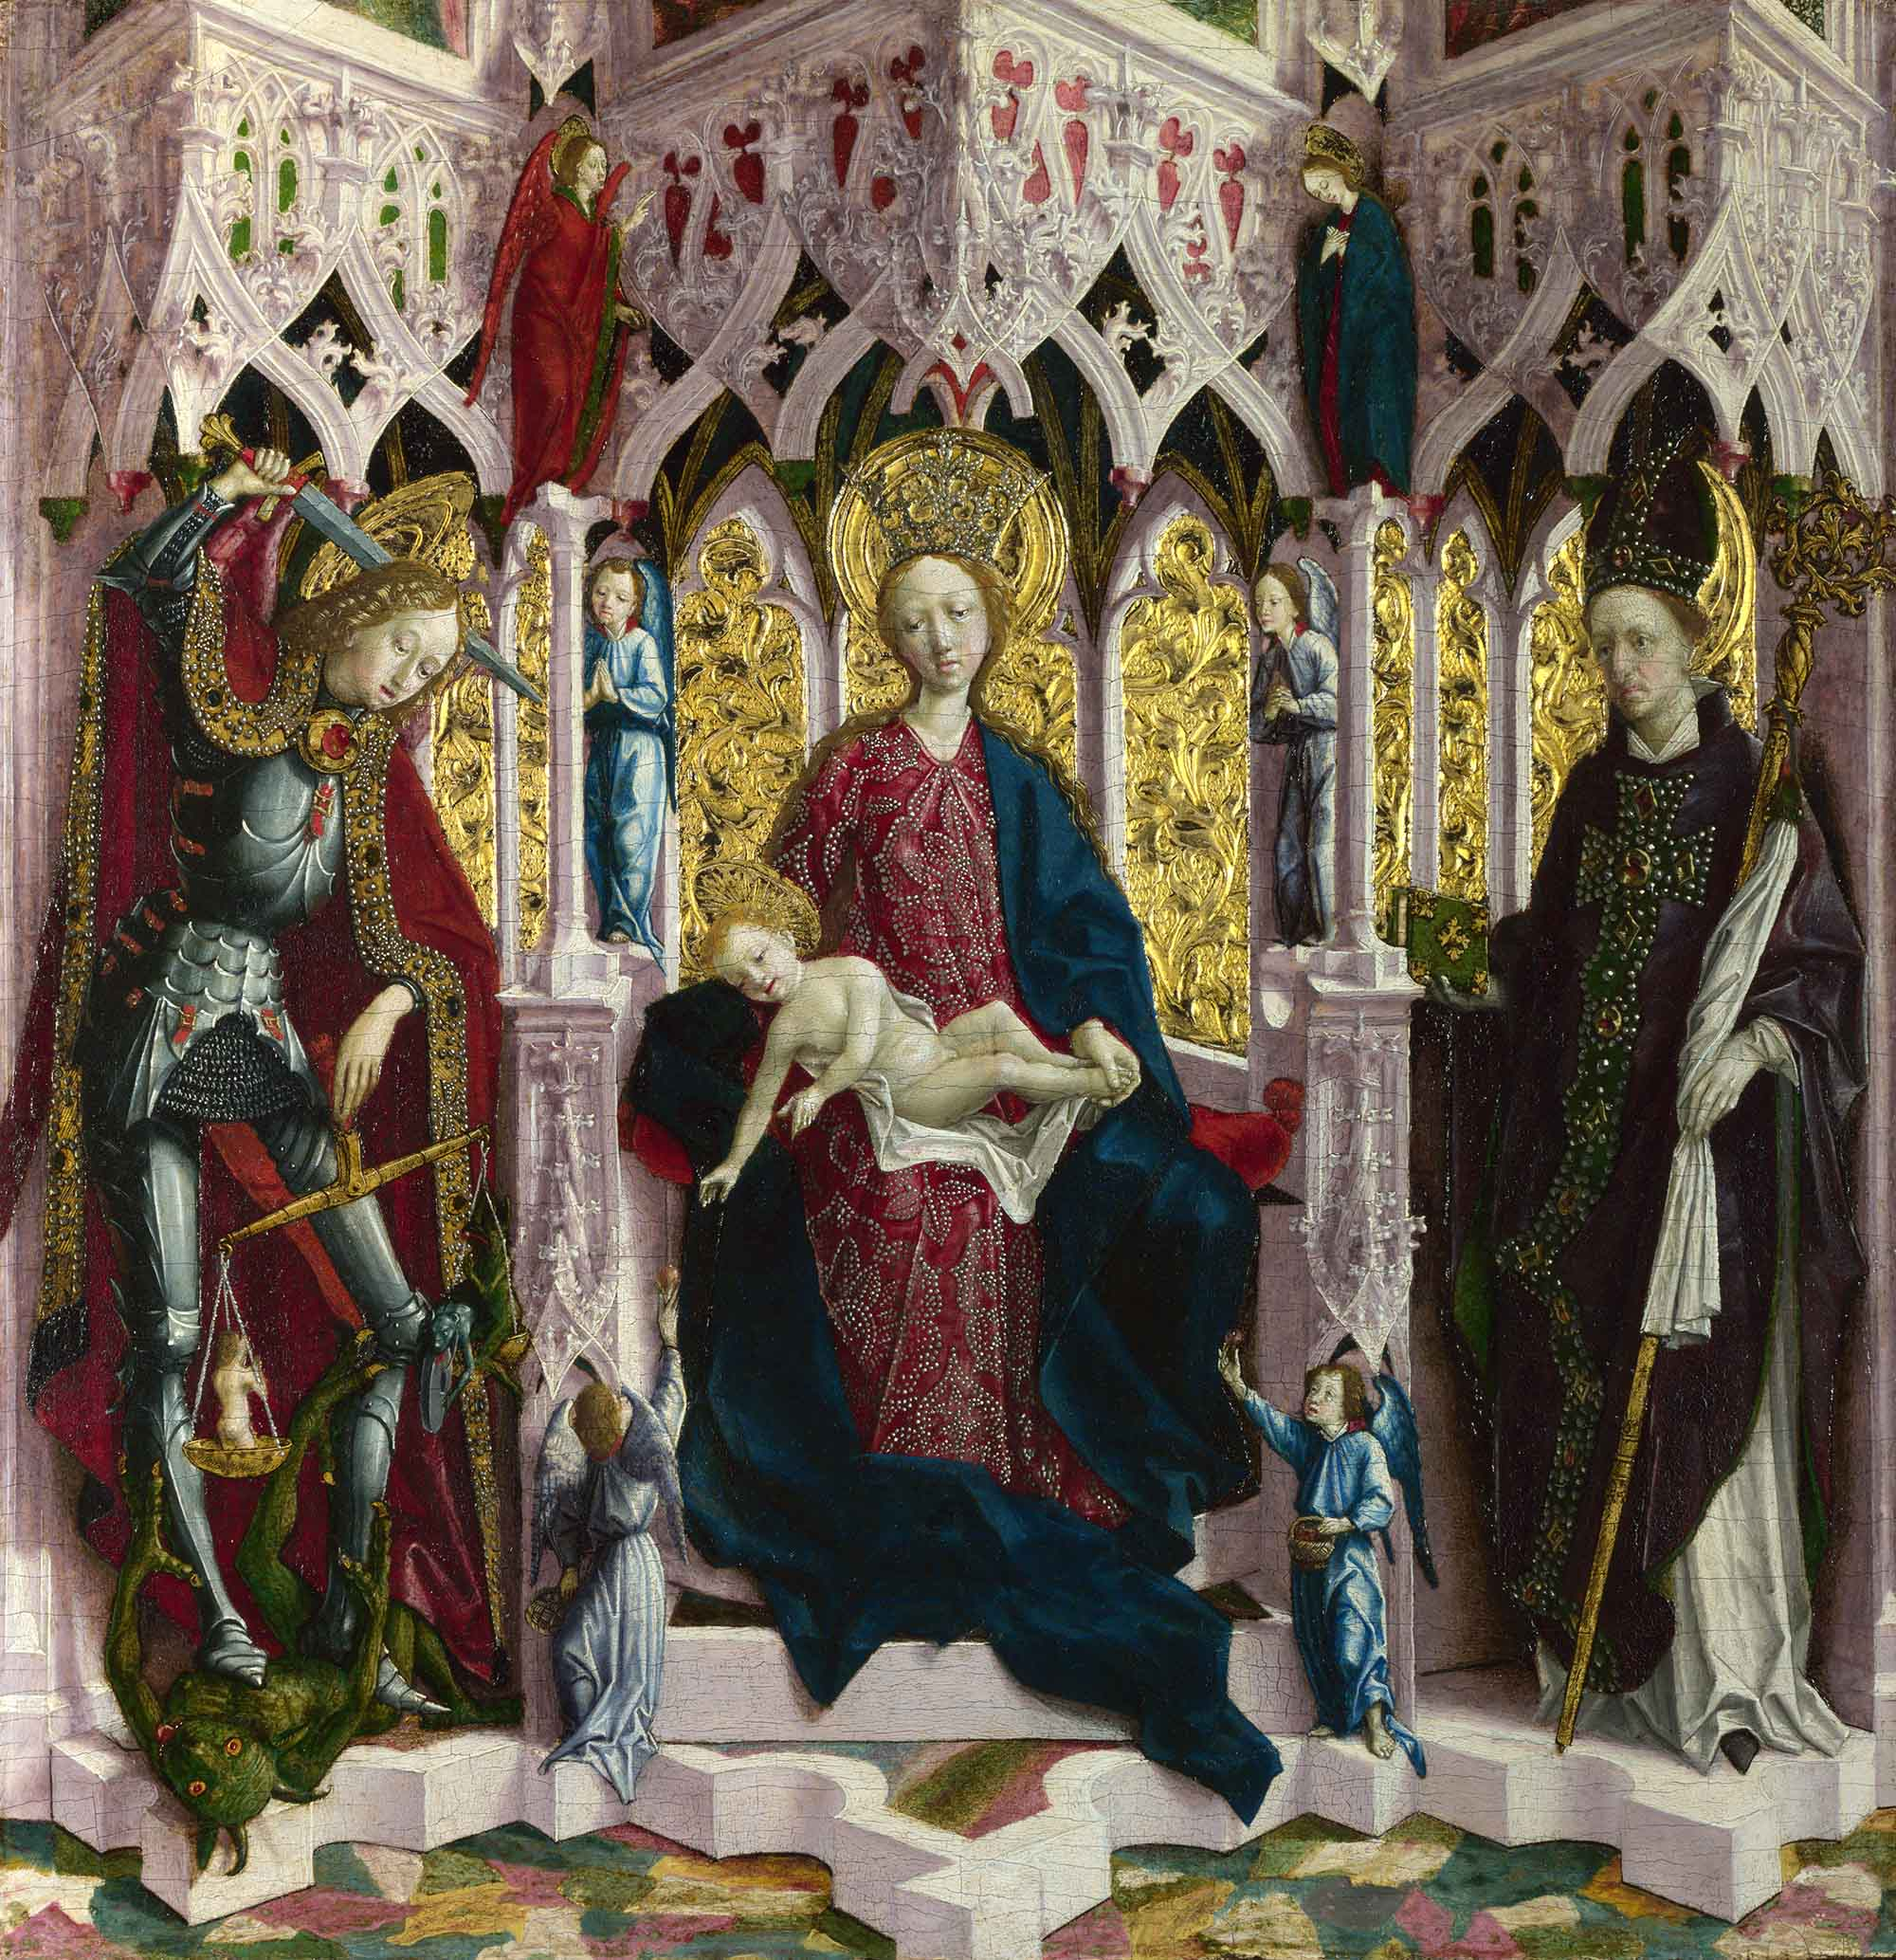 The Virgin and Child Enthroned with Angels and Saints, attributed to Michael Pacher (approx. 1475) | © The National Gallery, London (fair use)